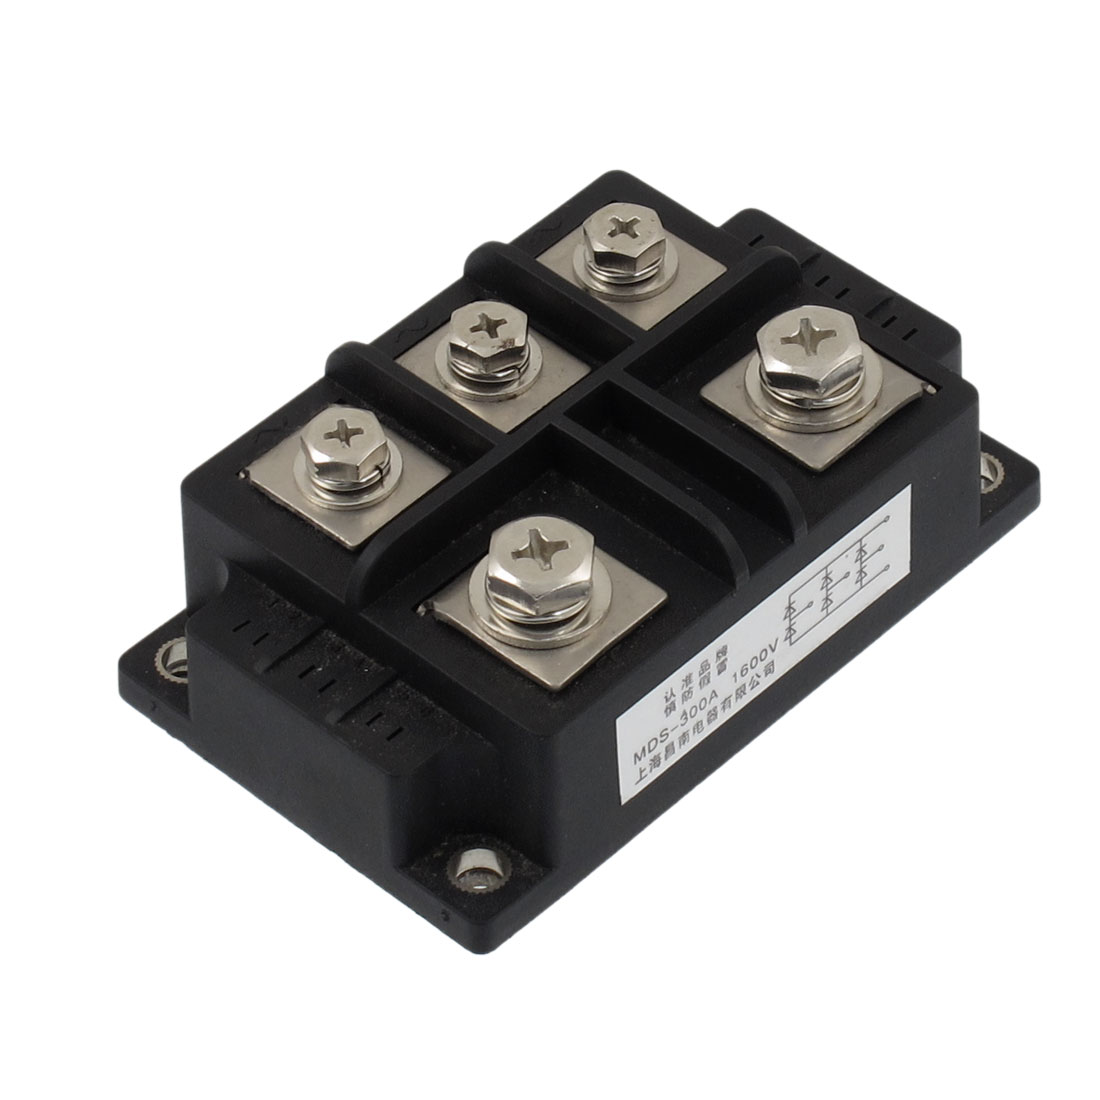 Black 5 Terminals Circuit Diode Rectifier Module Transistor Semiconductor AC 1600V 300A